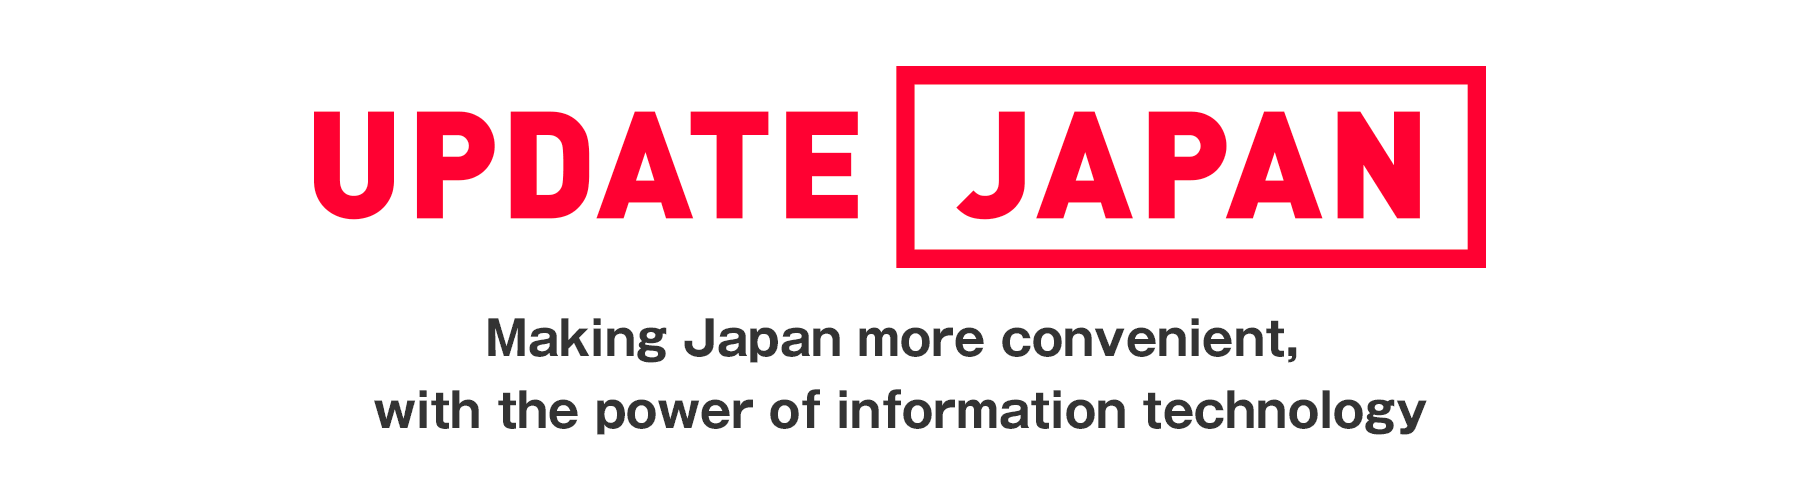 UPDATEJAPAN; Making Japan more convenient, with the power of information technology